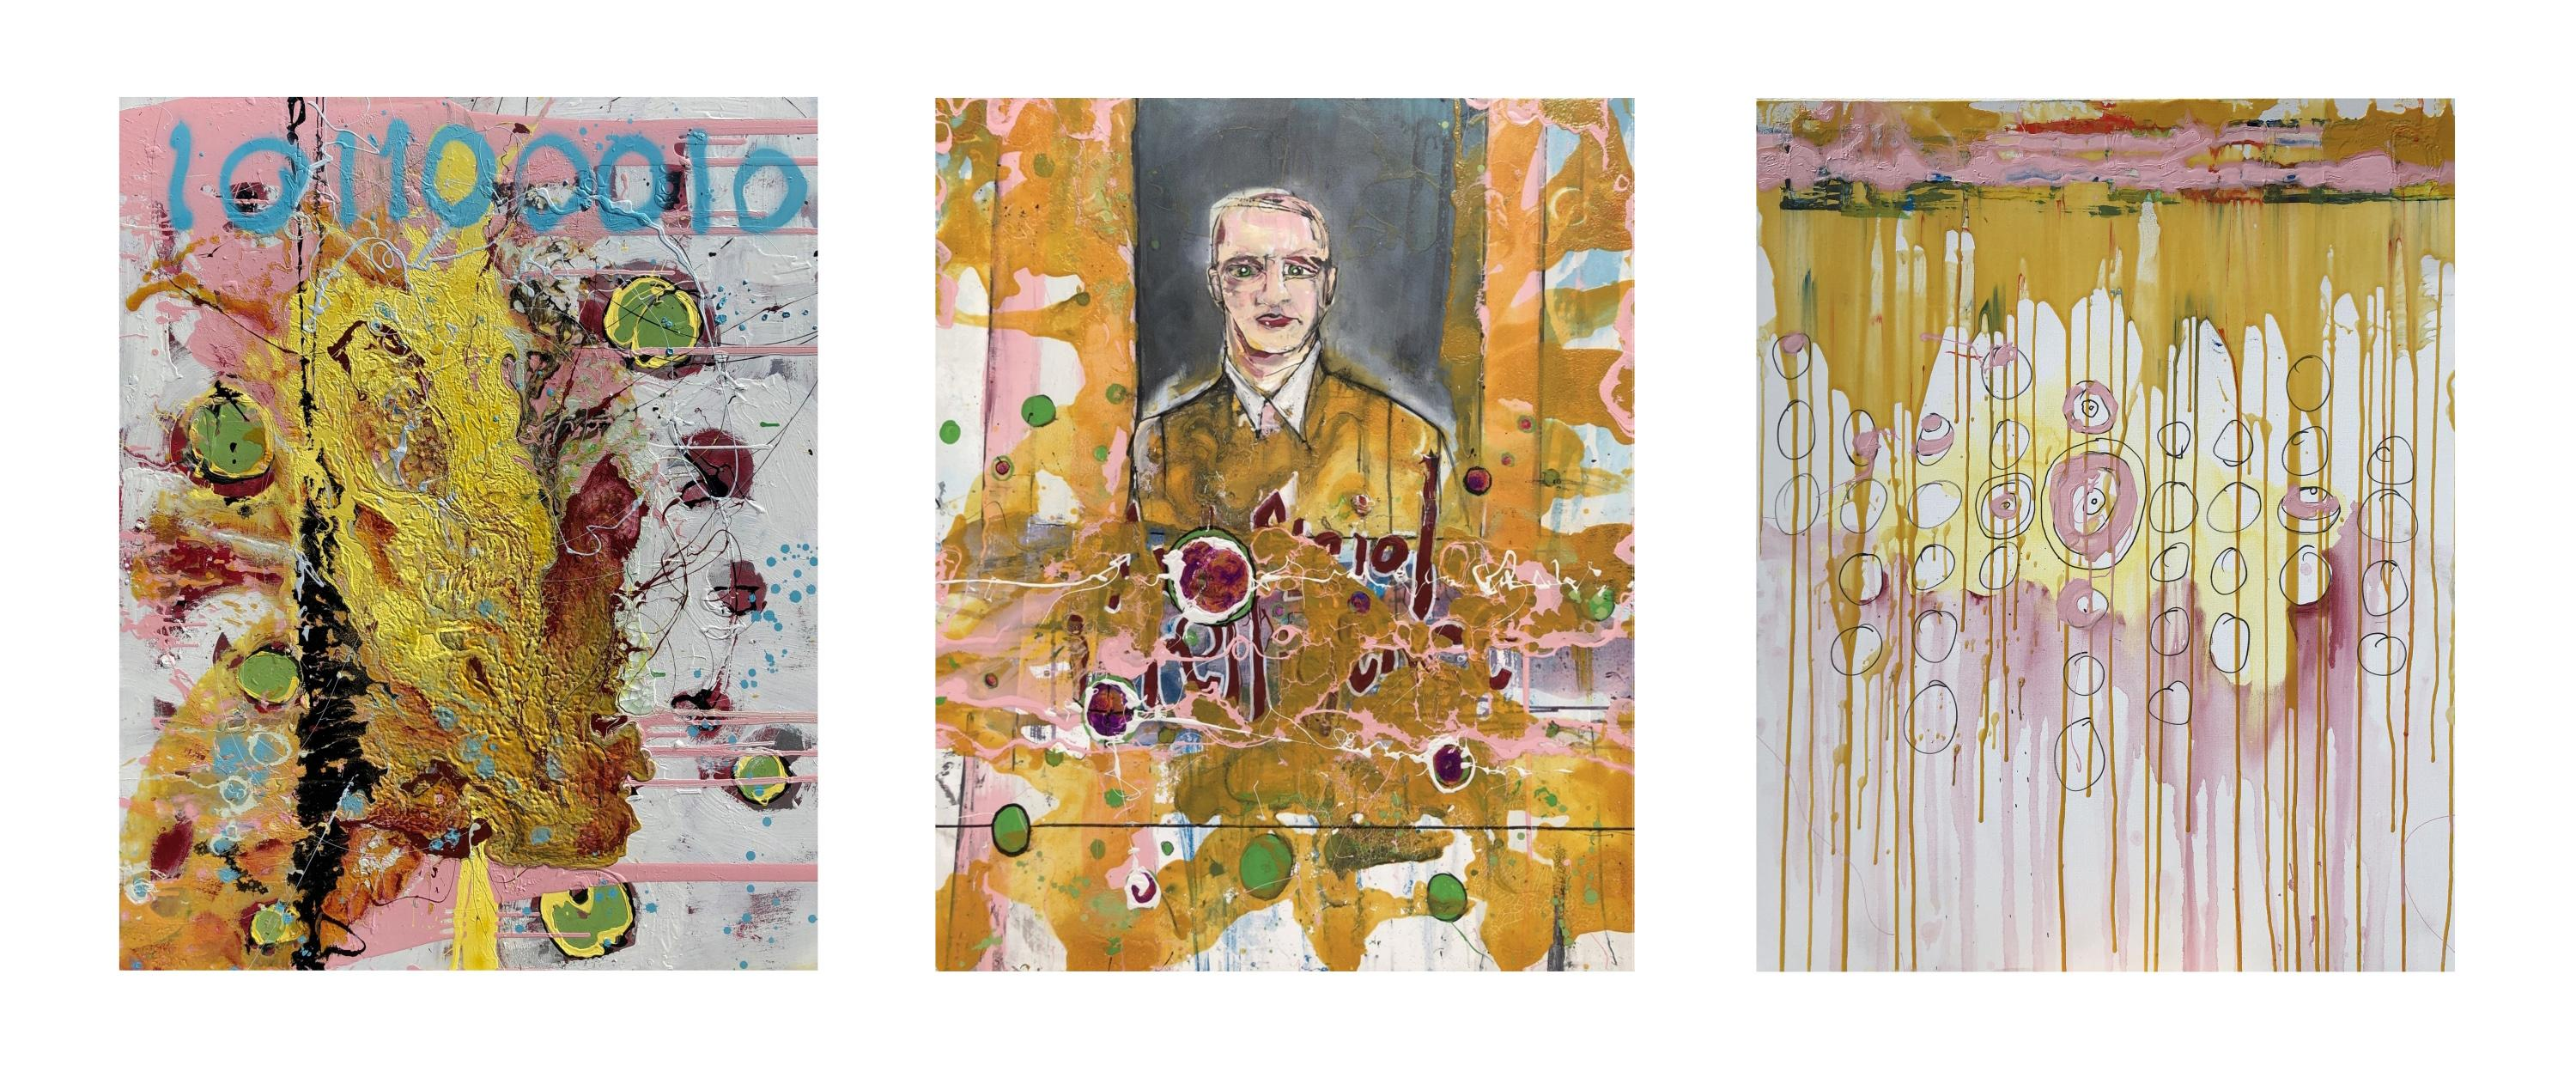 Triptych of paintings related to cybersecurity